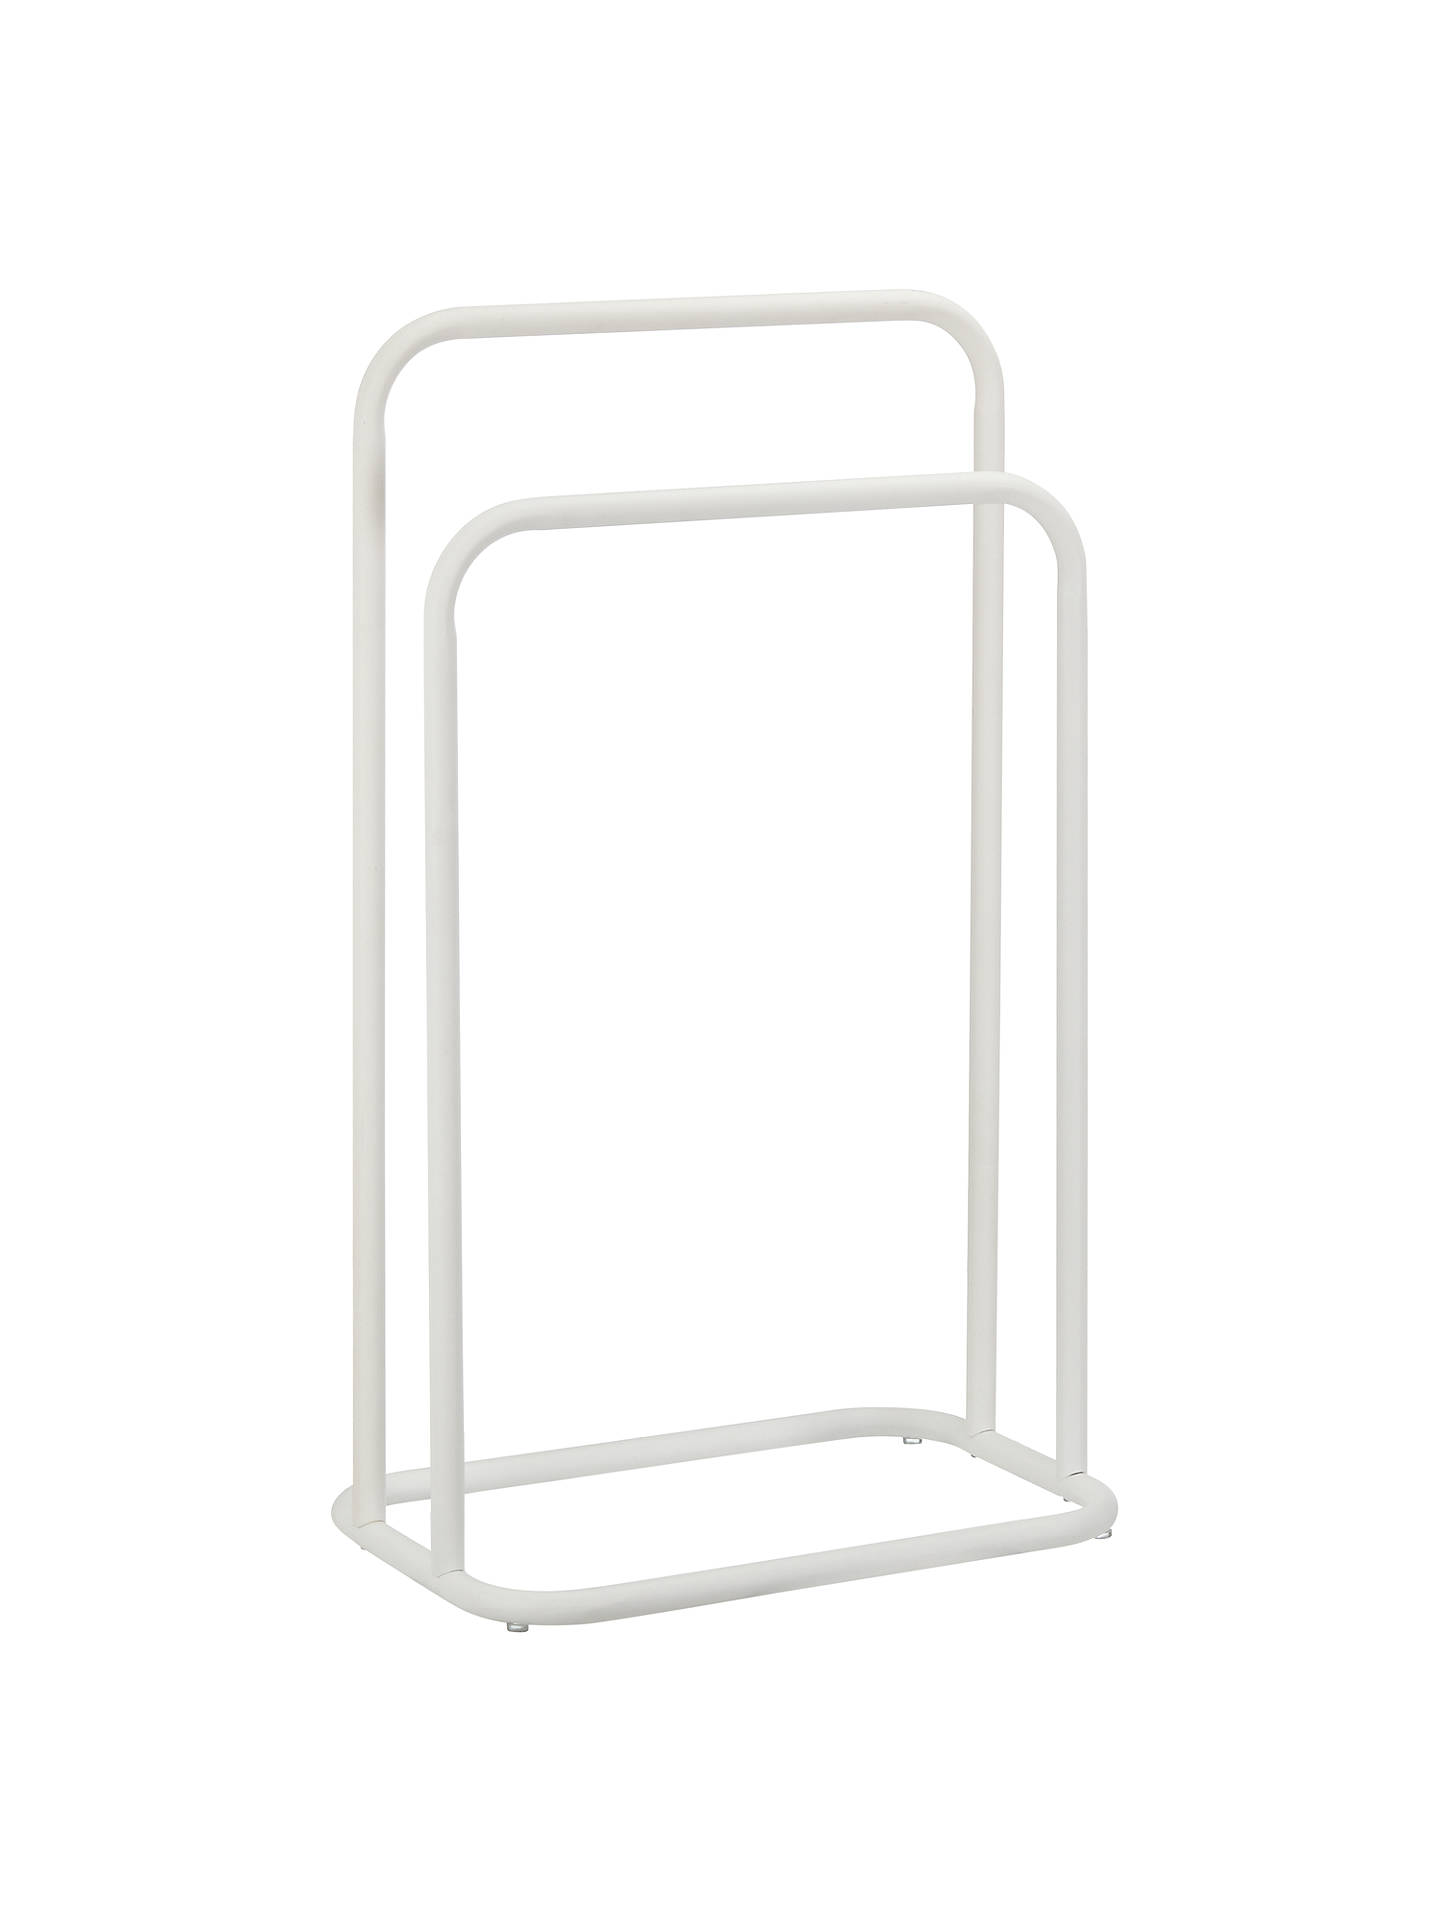 House By John Lewis Freestanding Towel Rack At John Lewis Partners